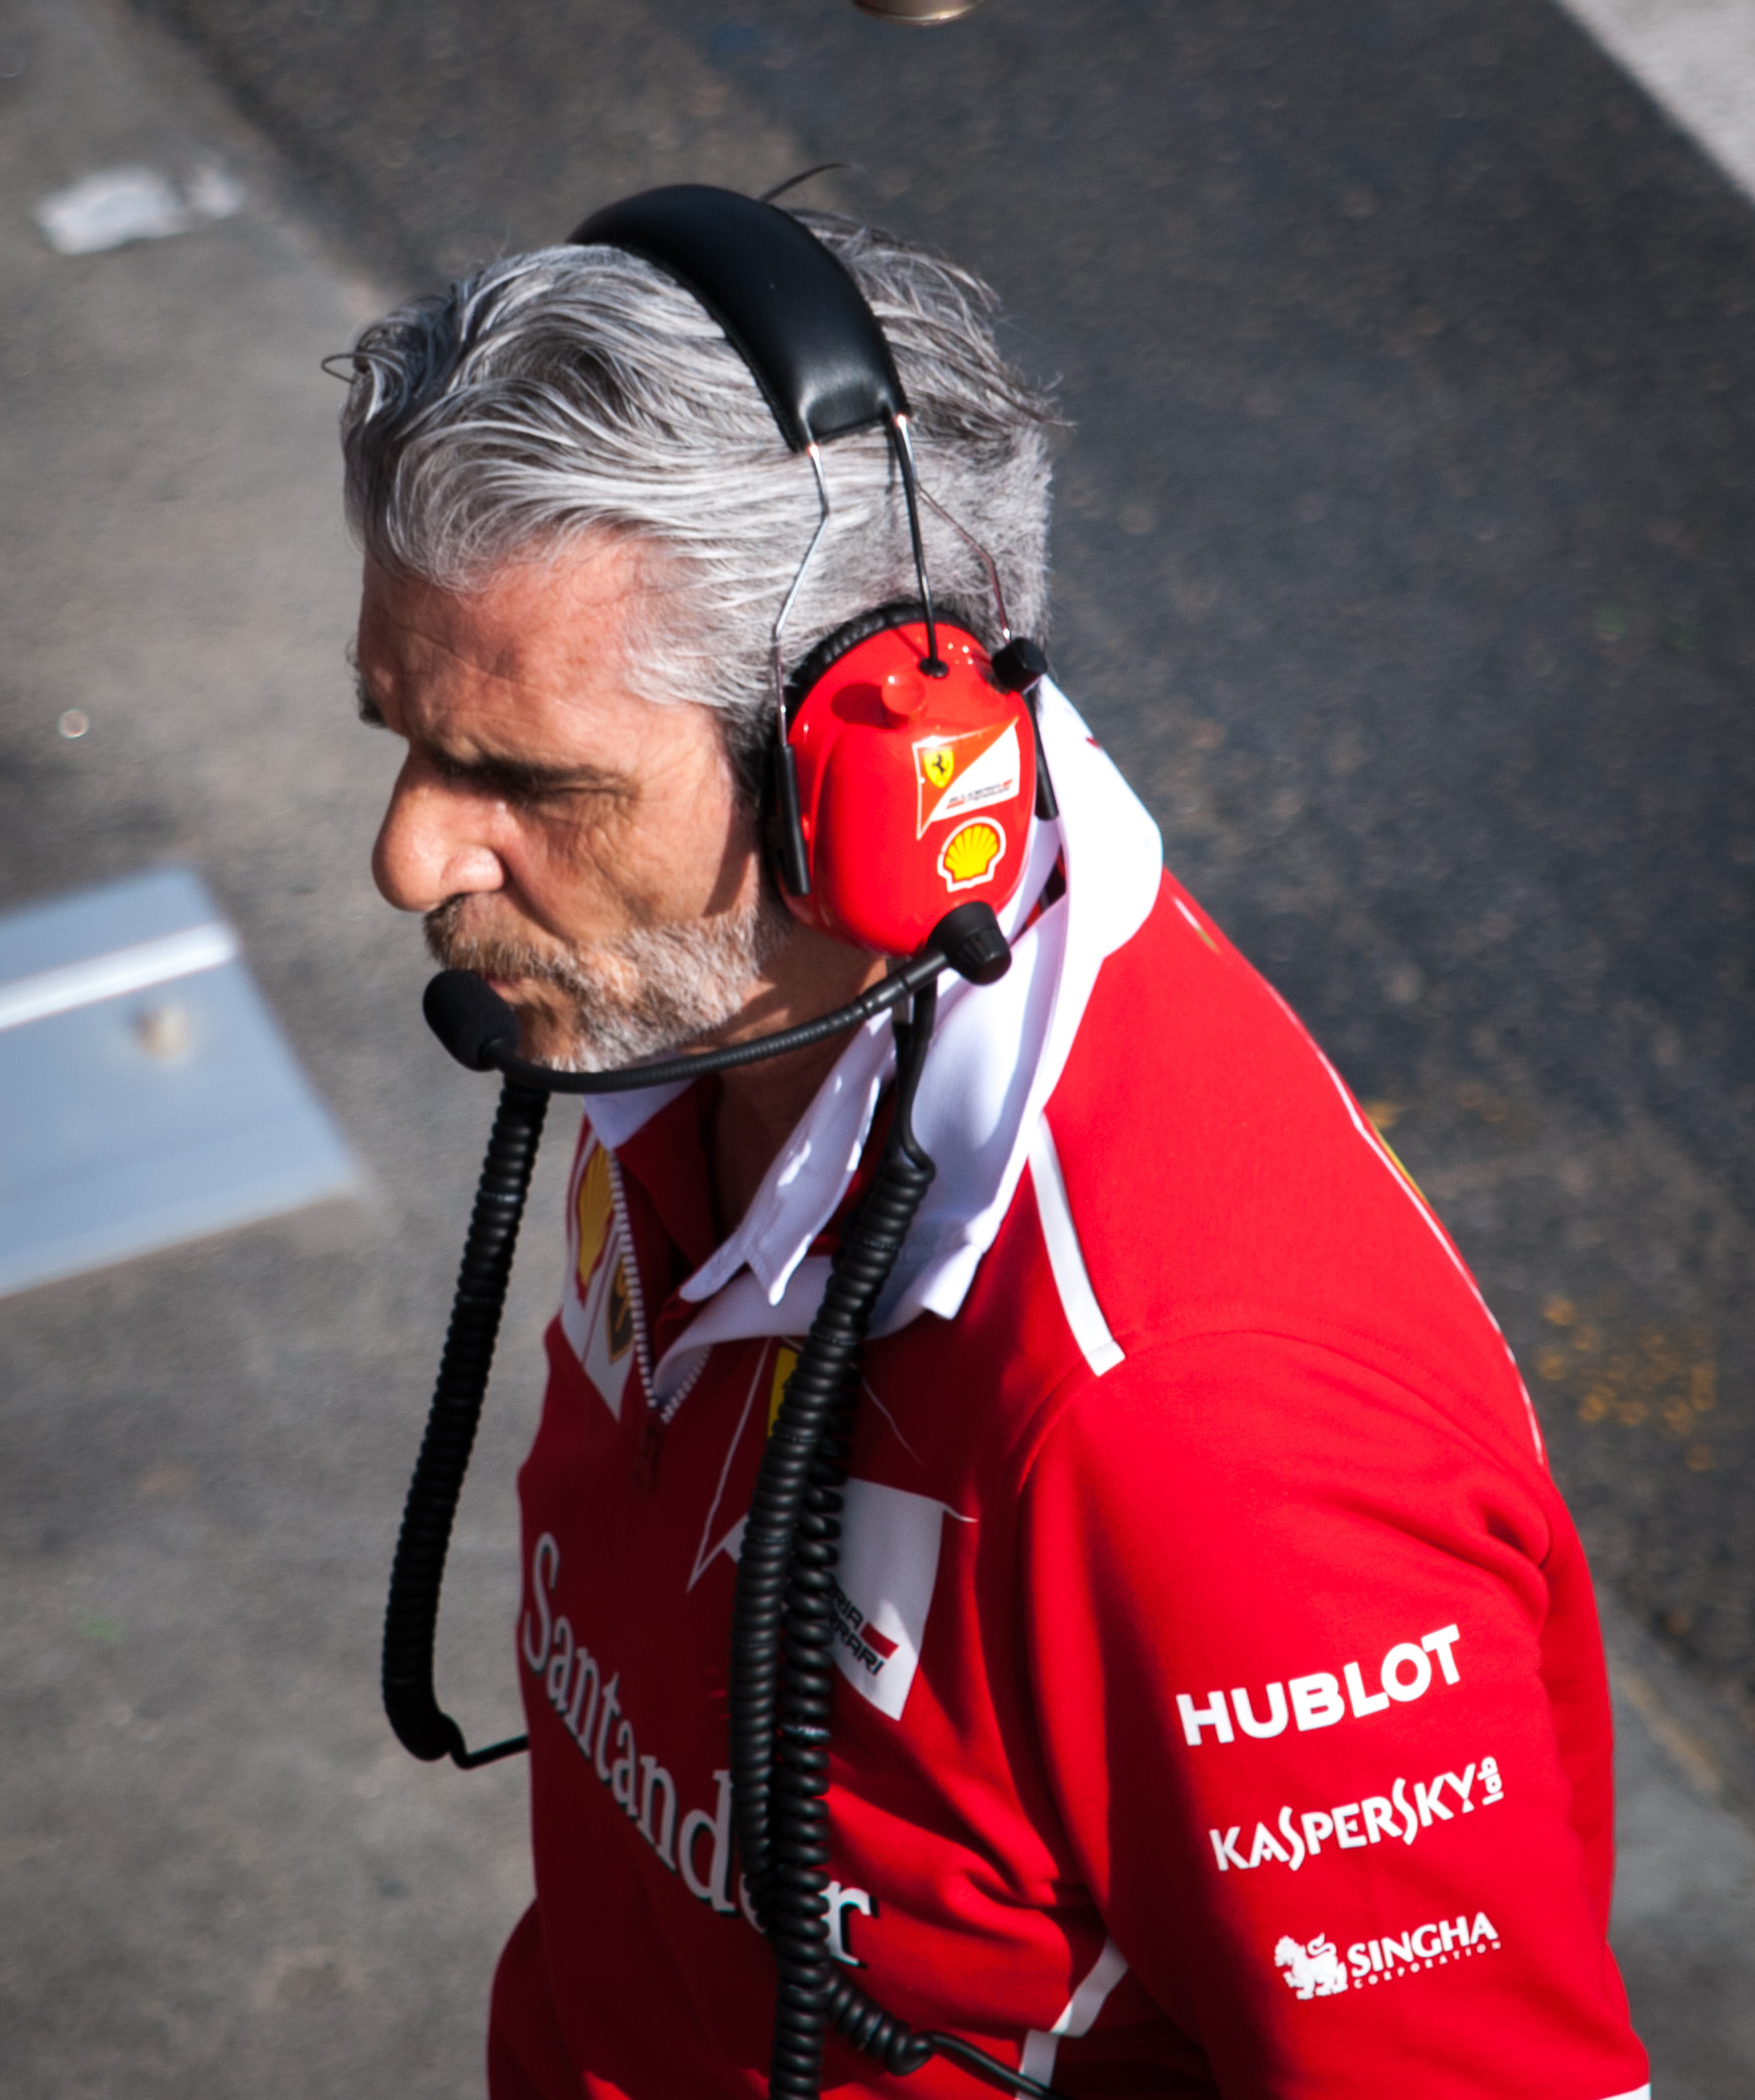 The 61-year old son of father (?) and mother(?) Maurizio Arrivabene in 2018 photo. Maurizio Arrivabene earned a  million dollar salary - leaving the net worth at 2 million in 2018